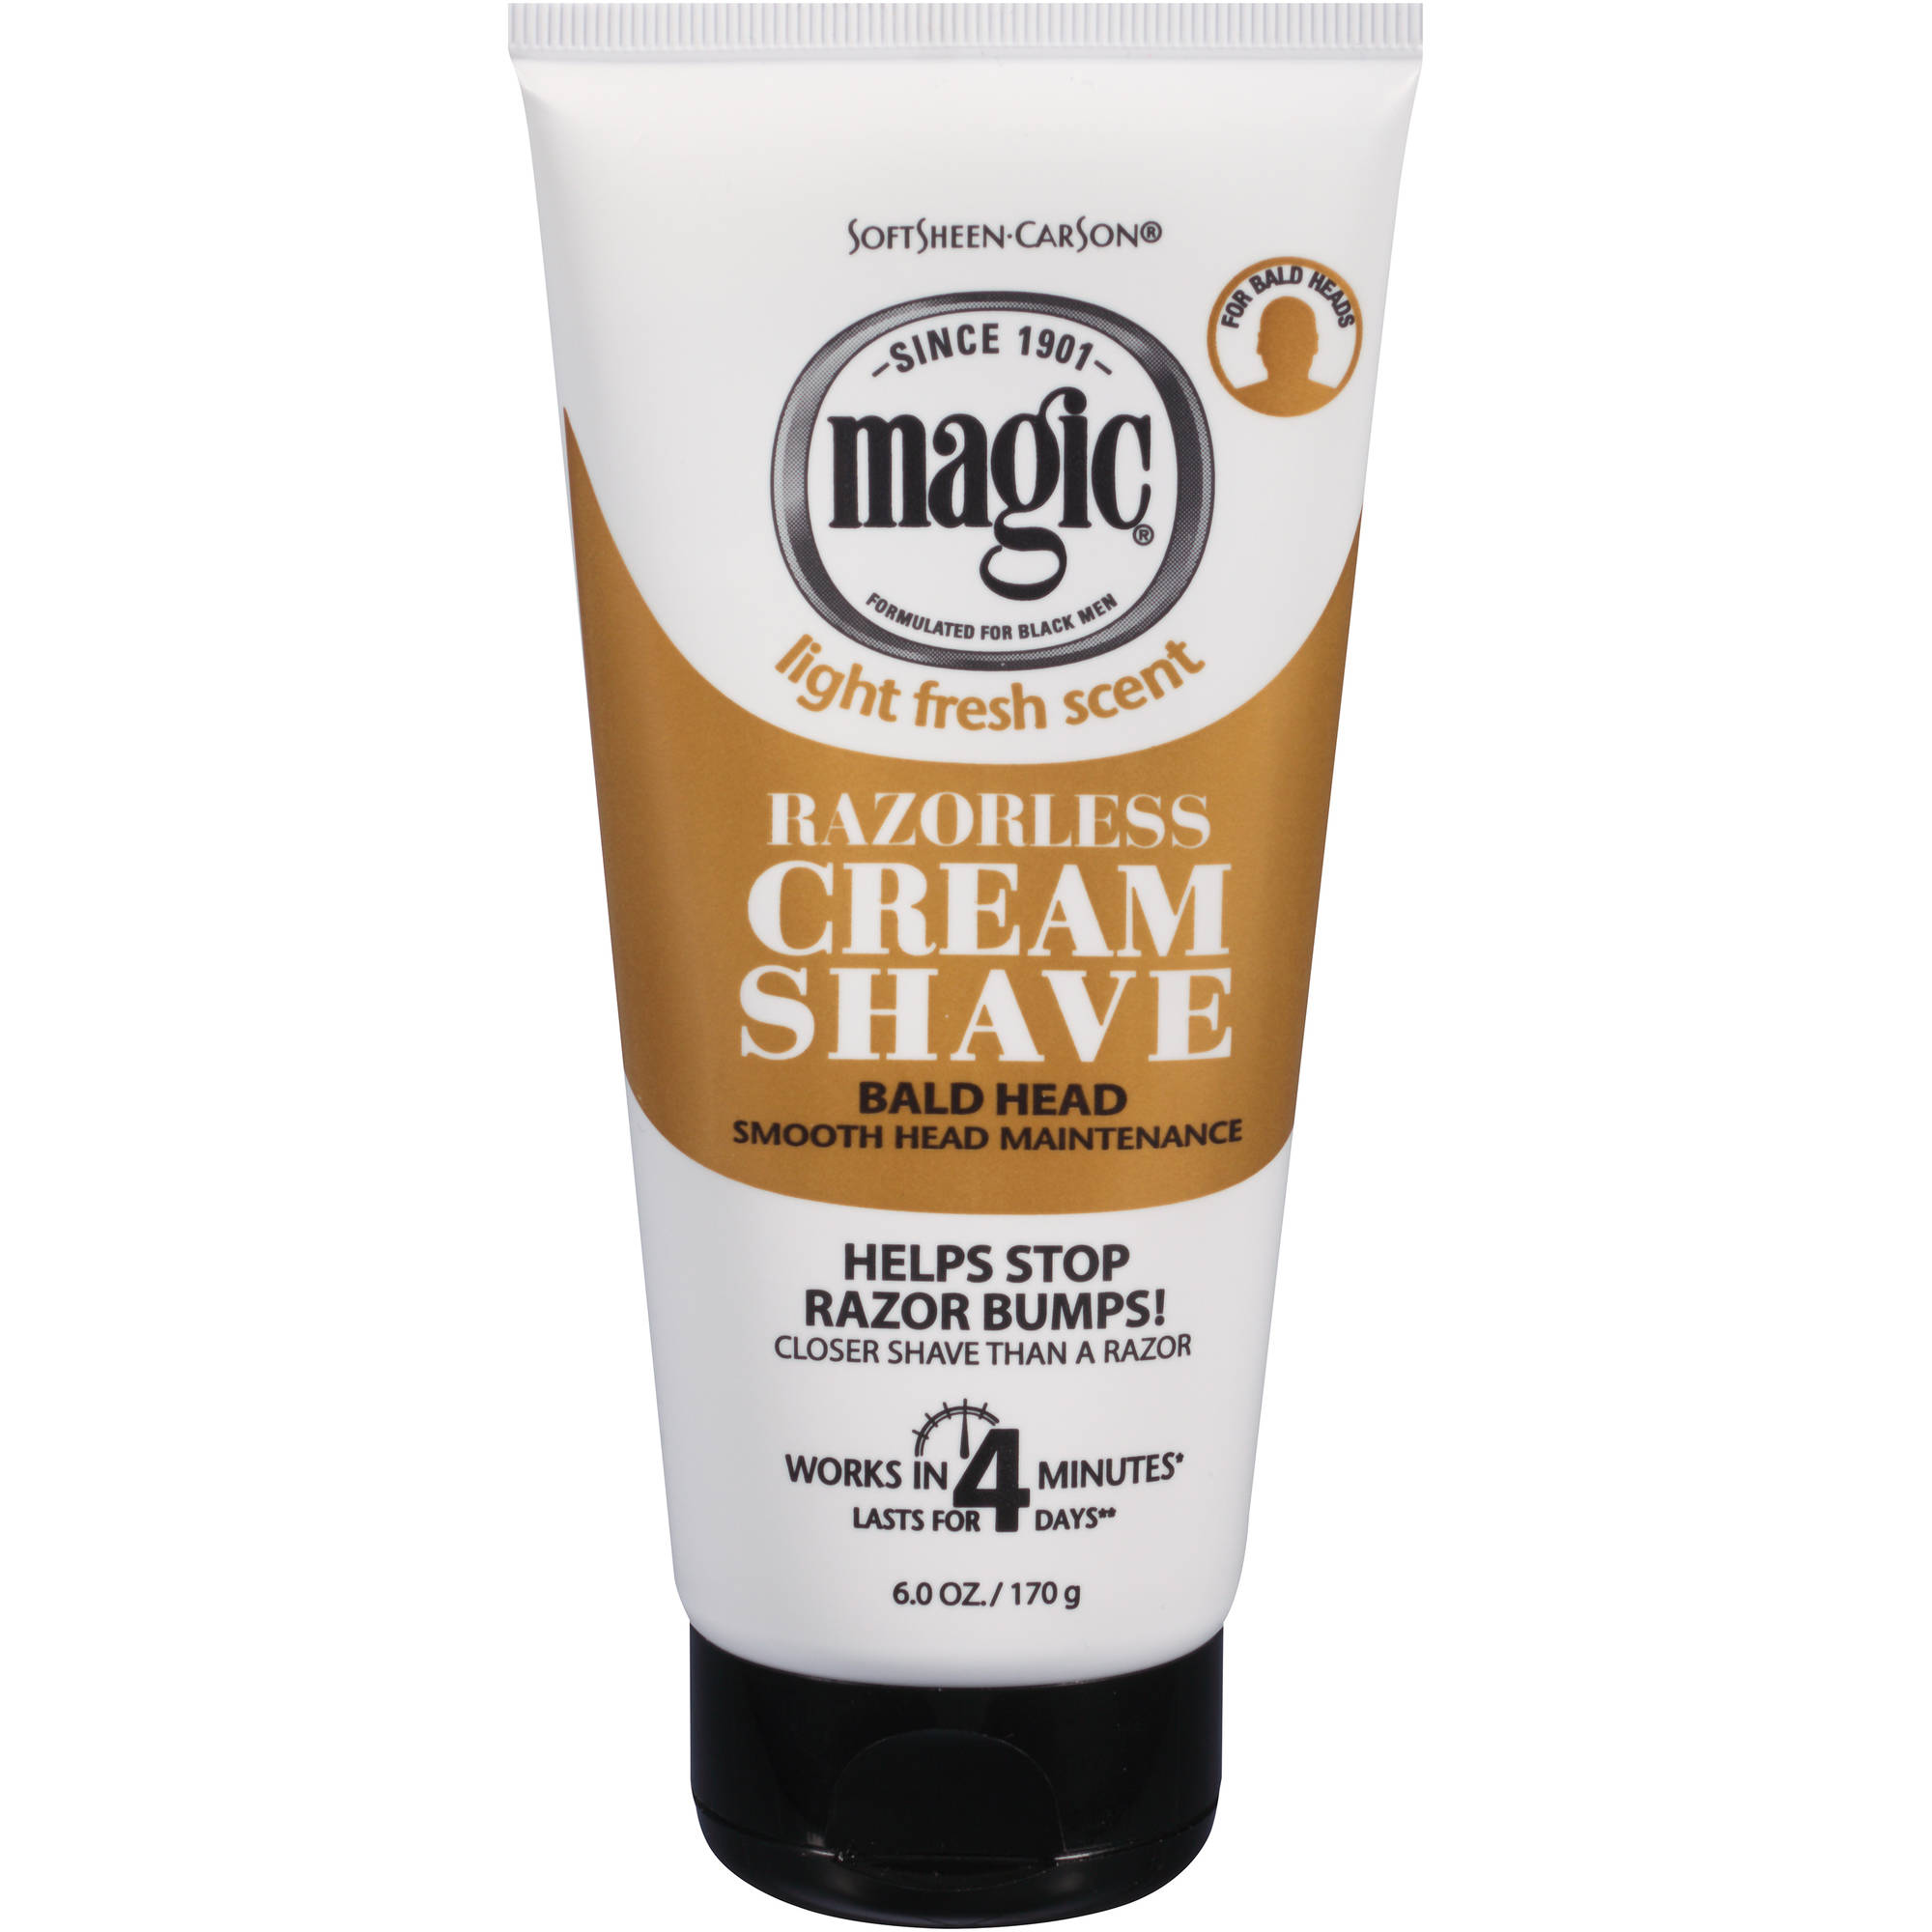 Magic Razorless Shave Cream for Bald Head Maintenance